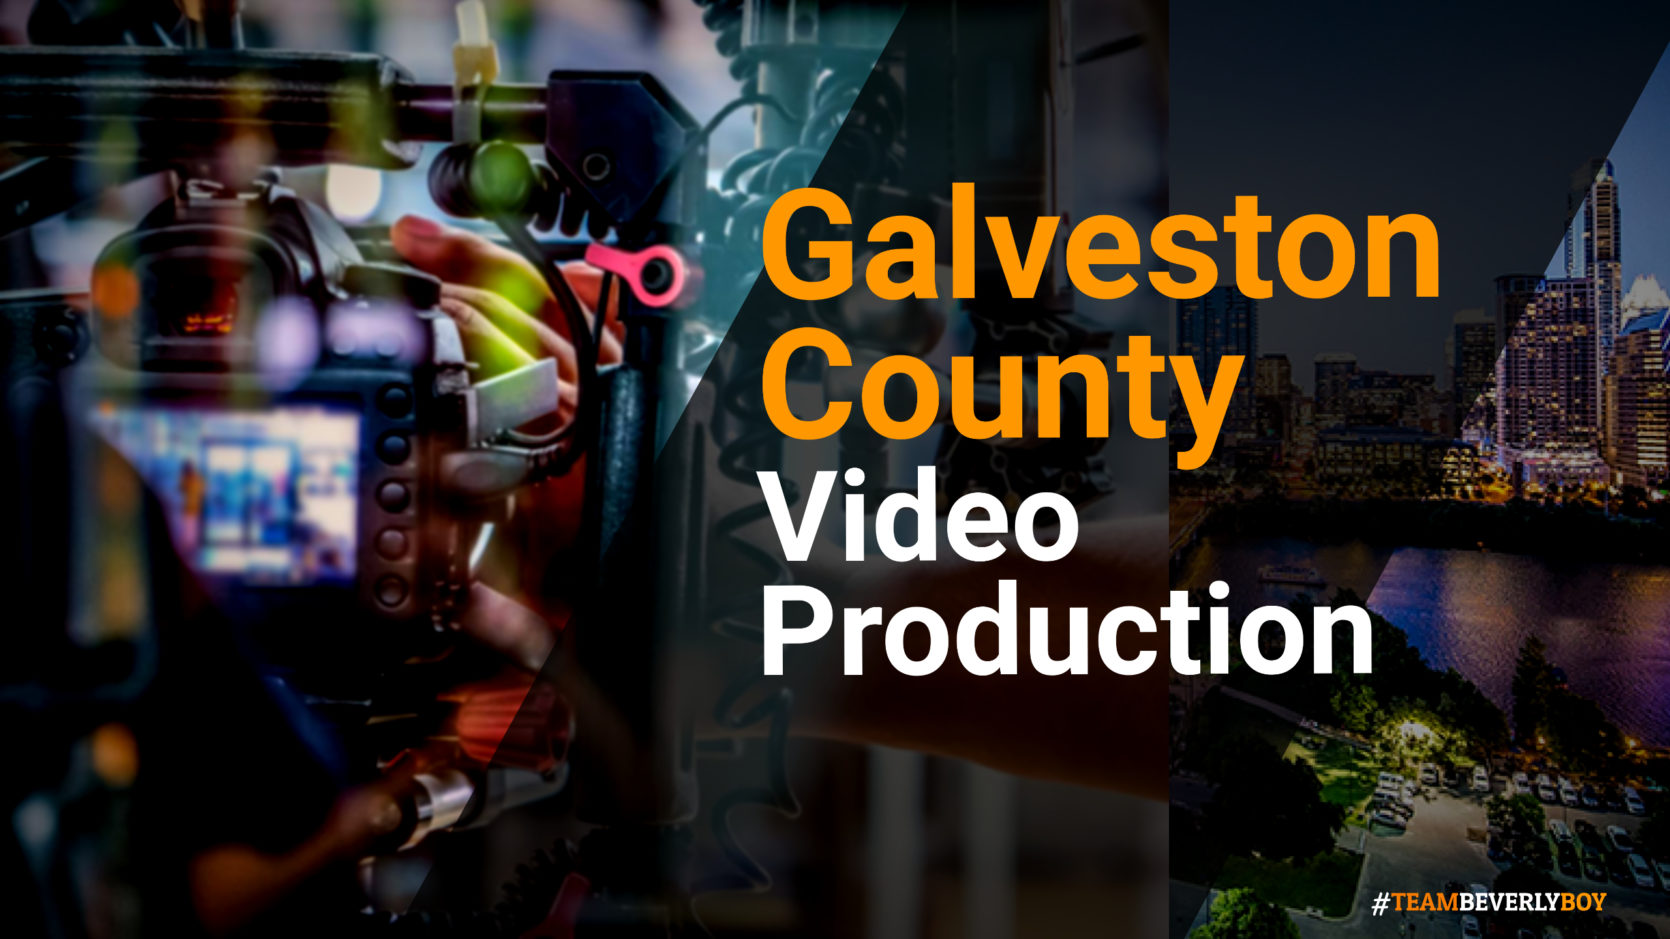 Galveston County video production